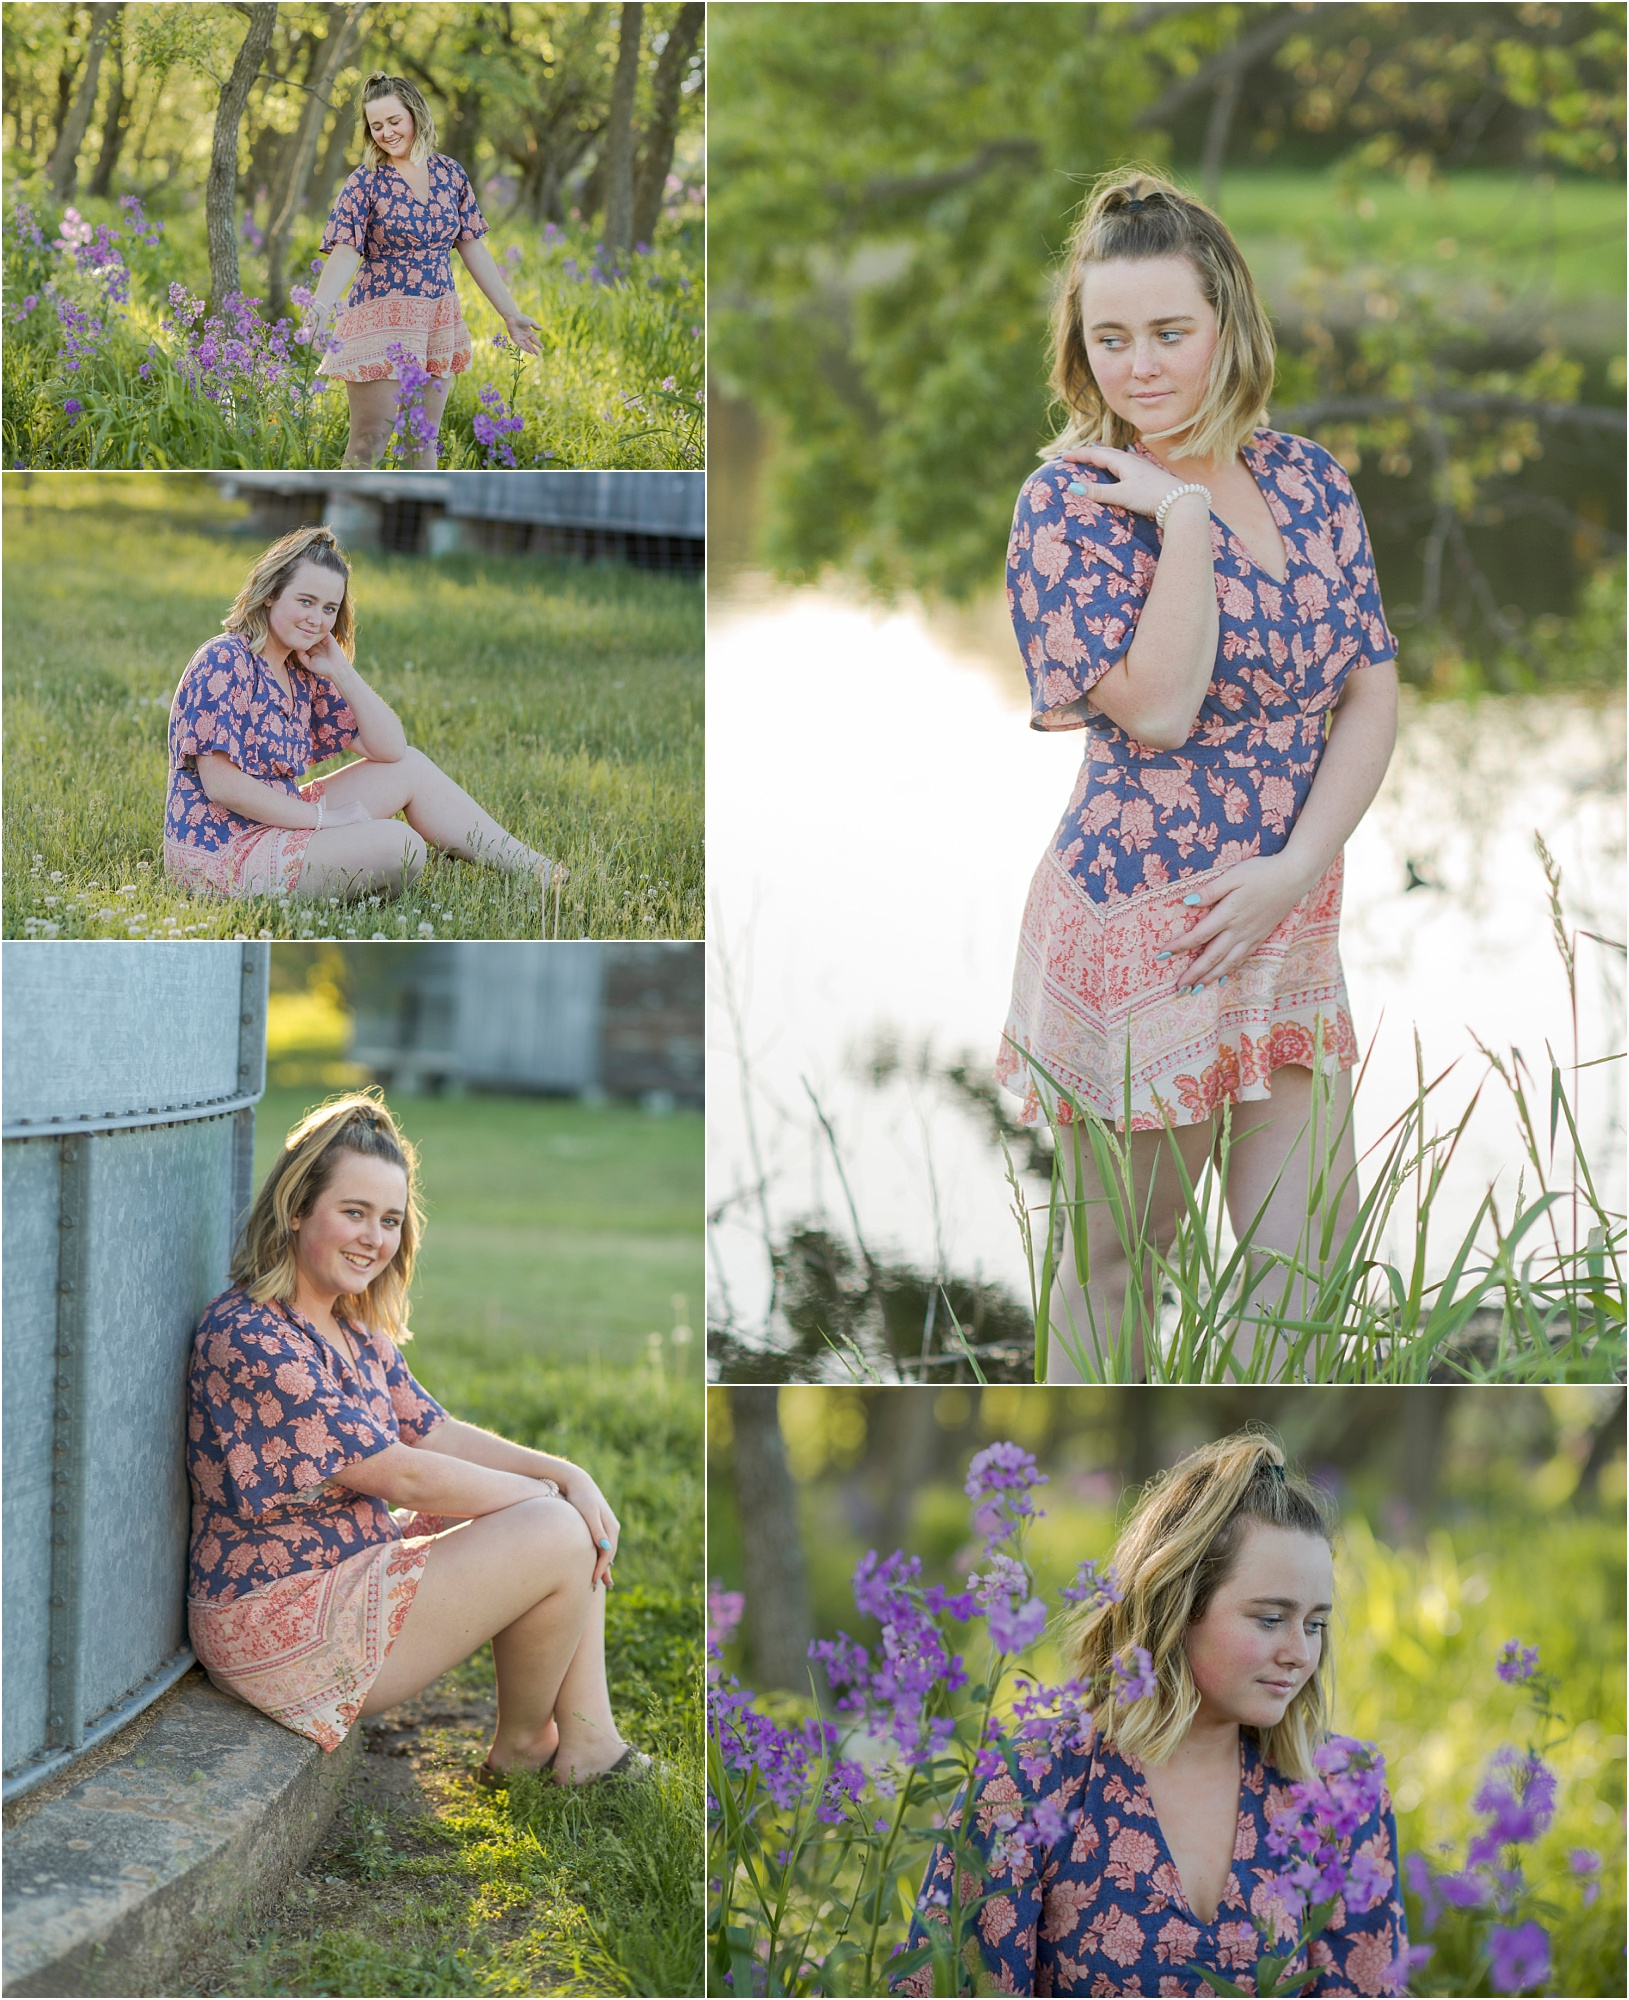 images of high school girl senior photos named morgan of hickman nebraska who went to norris high school in nebraska and is part of the class of 2020. photos were taken near swanton nebraska in saline county. photo includes purple spring flowers at sunset with girl in floral romper with blue, yellow, red and white colors standing in tall natural grass with trees surrounding her. teen has short high lighted hair. photos taken at sunset near water and farm pond. photographer is kelsey homolka nerud of wilber nebraska who specializes in high school senior photography and senior pictures.